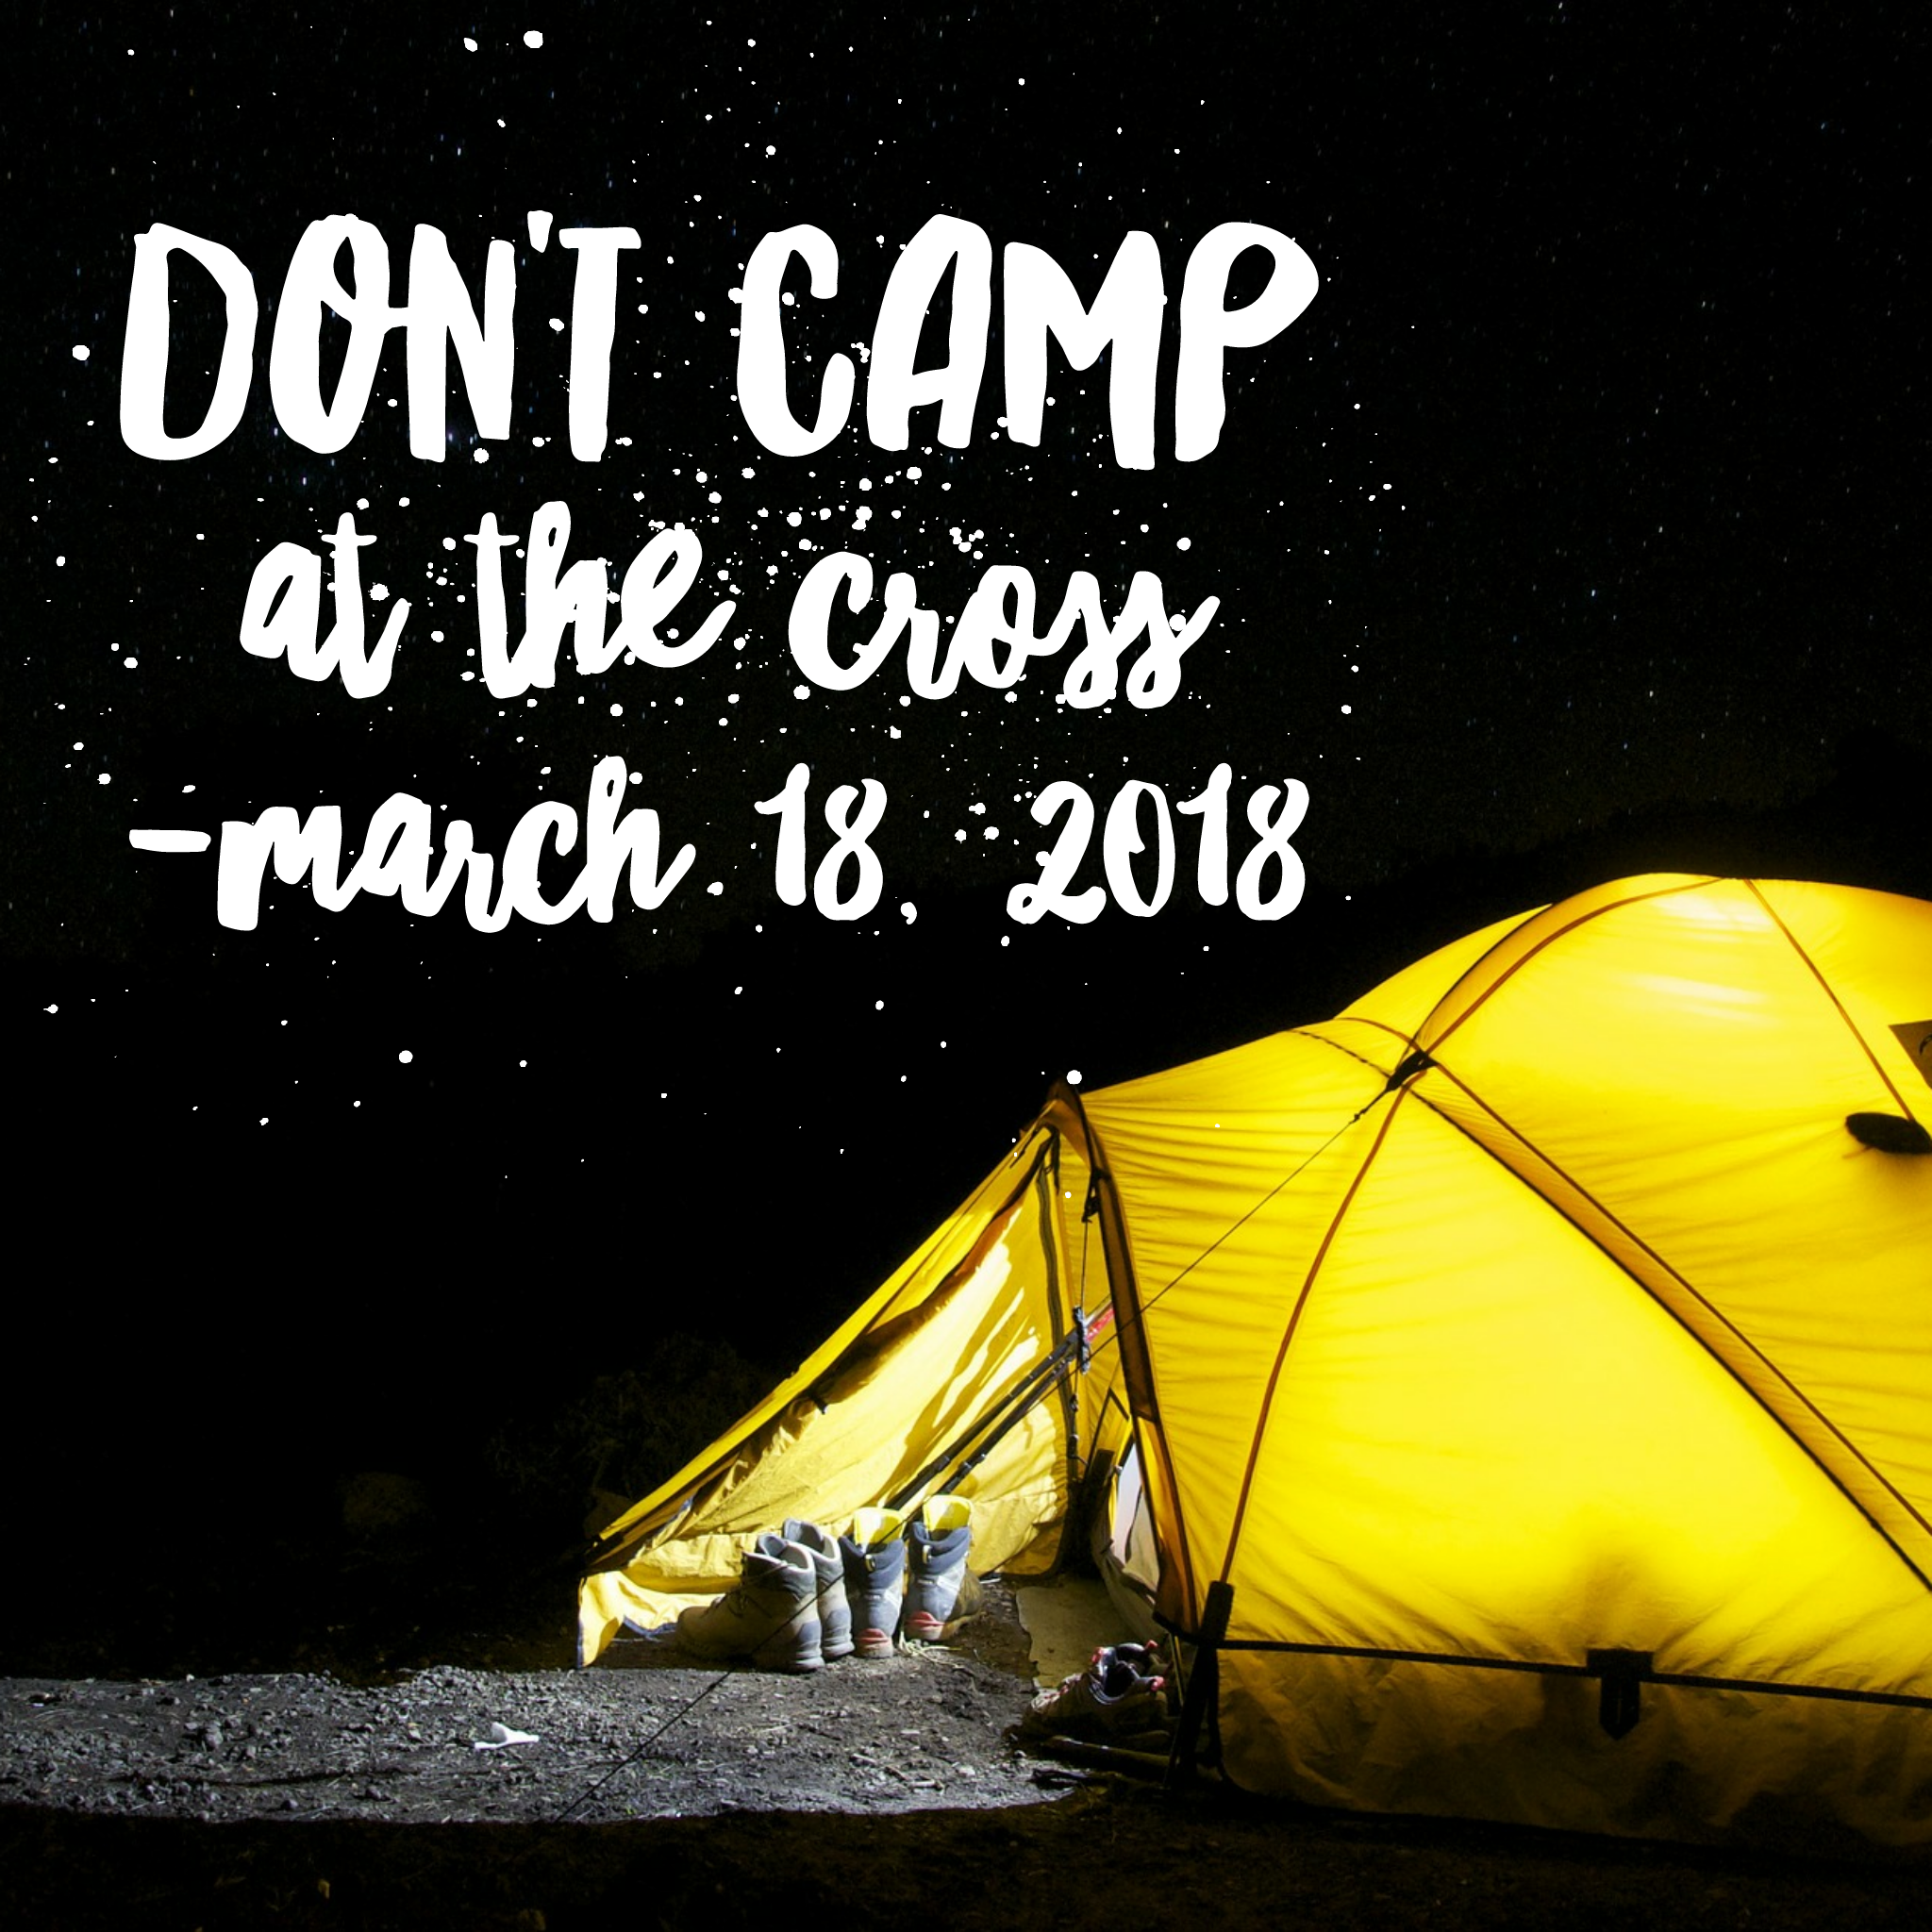 Don't Camp At The Cross